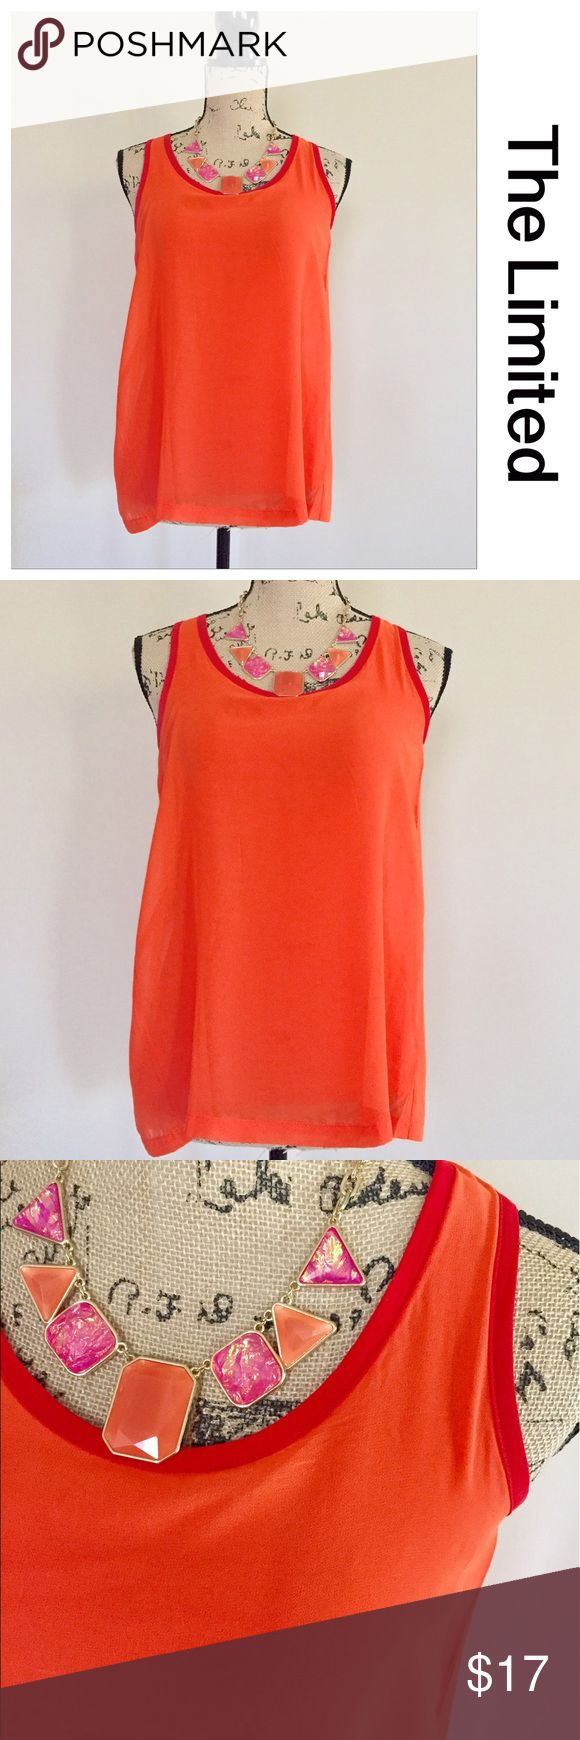 "The Limited split back tank Super cute tank from The Limited has an orange chiffon overlay and a full t-shirt type lining. Red trim around scoop neck and down the split back. Racerback styling. Size XS. Shell is 100% polyester, lining 95% viscose 5% spandex. Excellent condition. Bust measures 16 1/2"", length 24"". The Limited Tops Tank Tops"